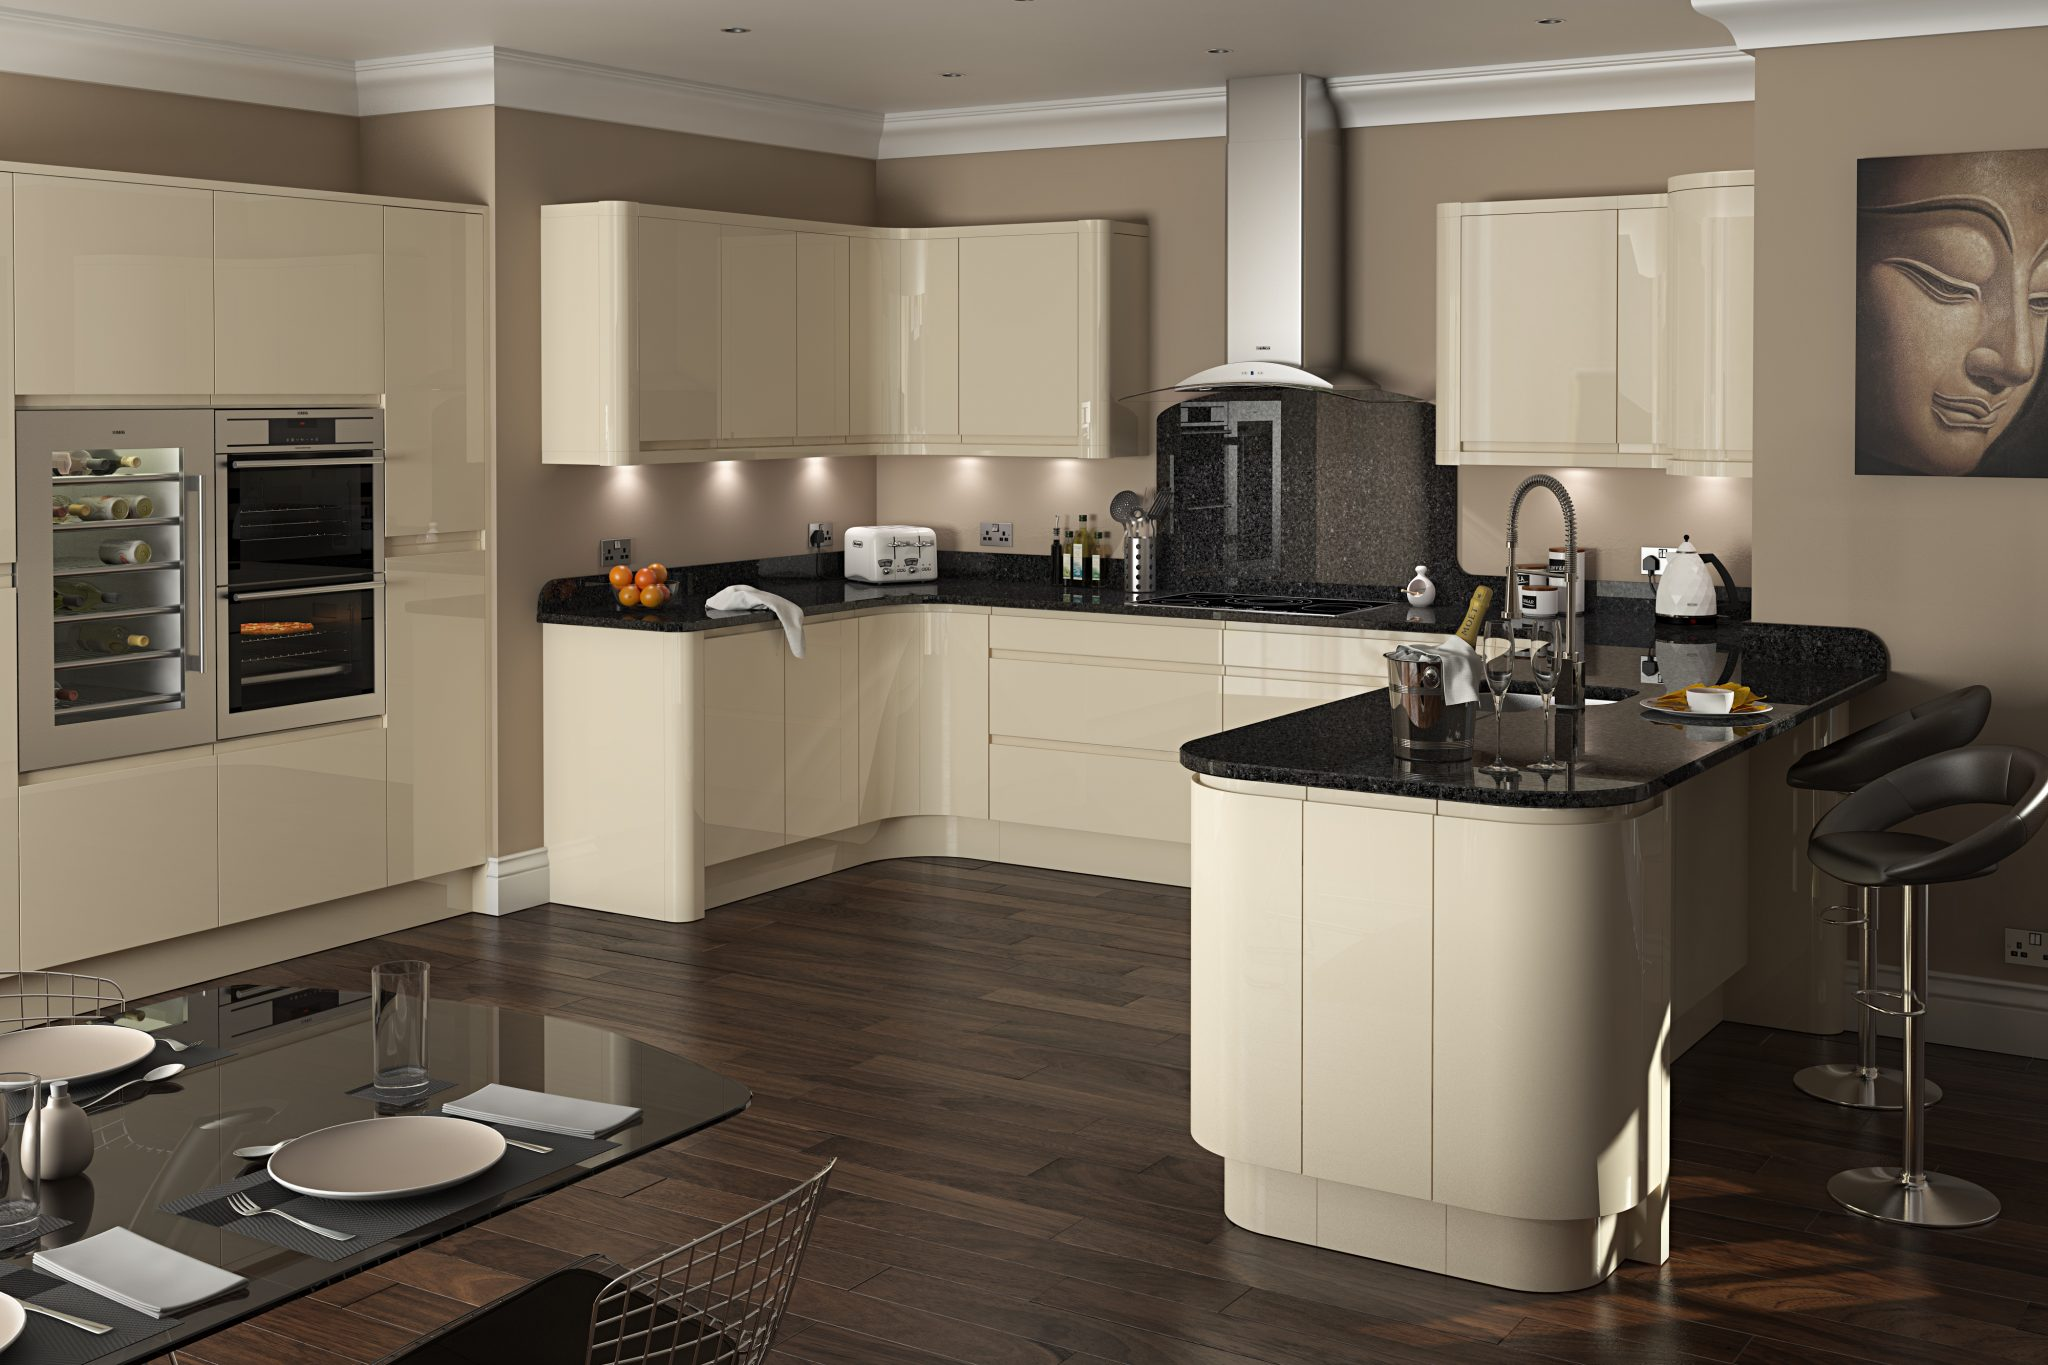 Kitchen design kitchens wirral bespoke luxury designs for Kitchens by design